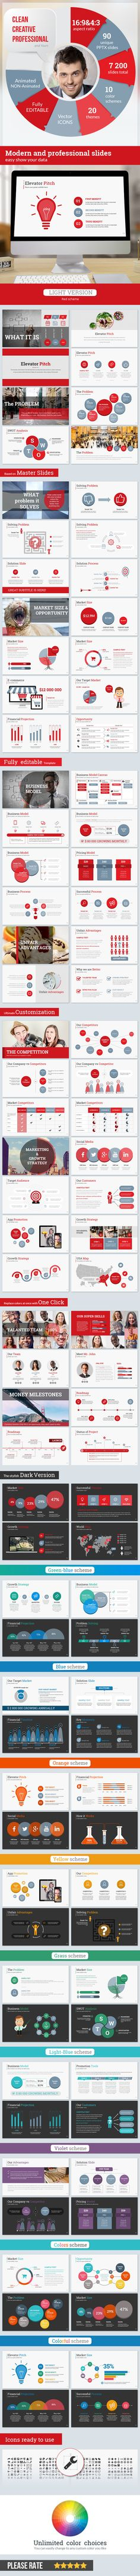 Startup Pitch Deck Leader-Up Presentation Template - Business PowerPoint Templates